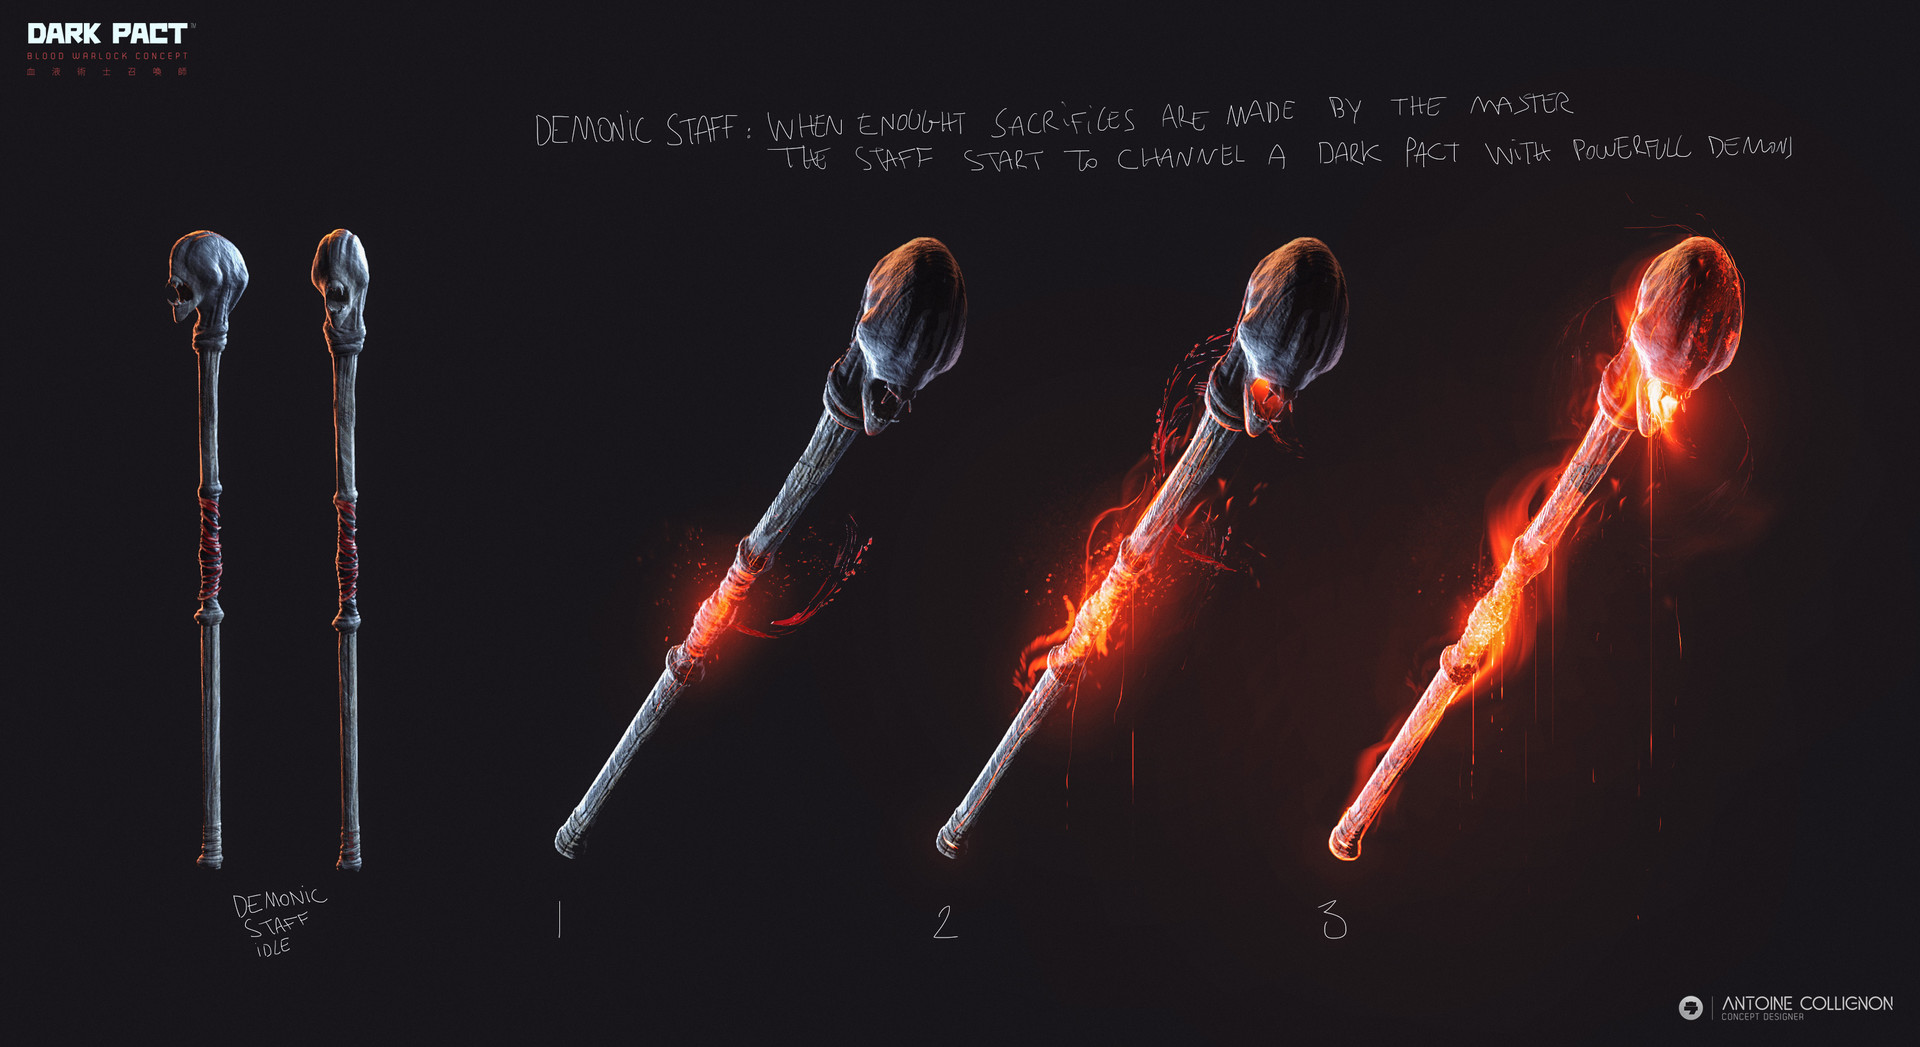 Antoine collignon dark pact characterdesign mmo bloodwarlock by antoine collignon 4